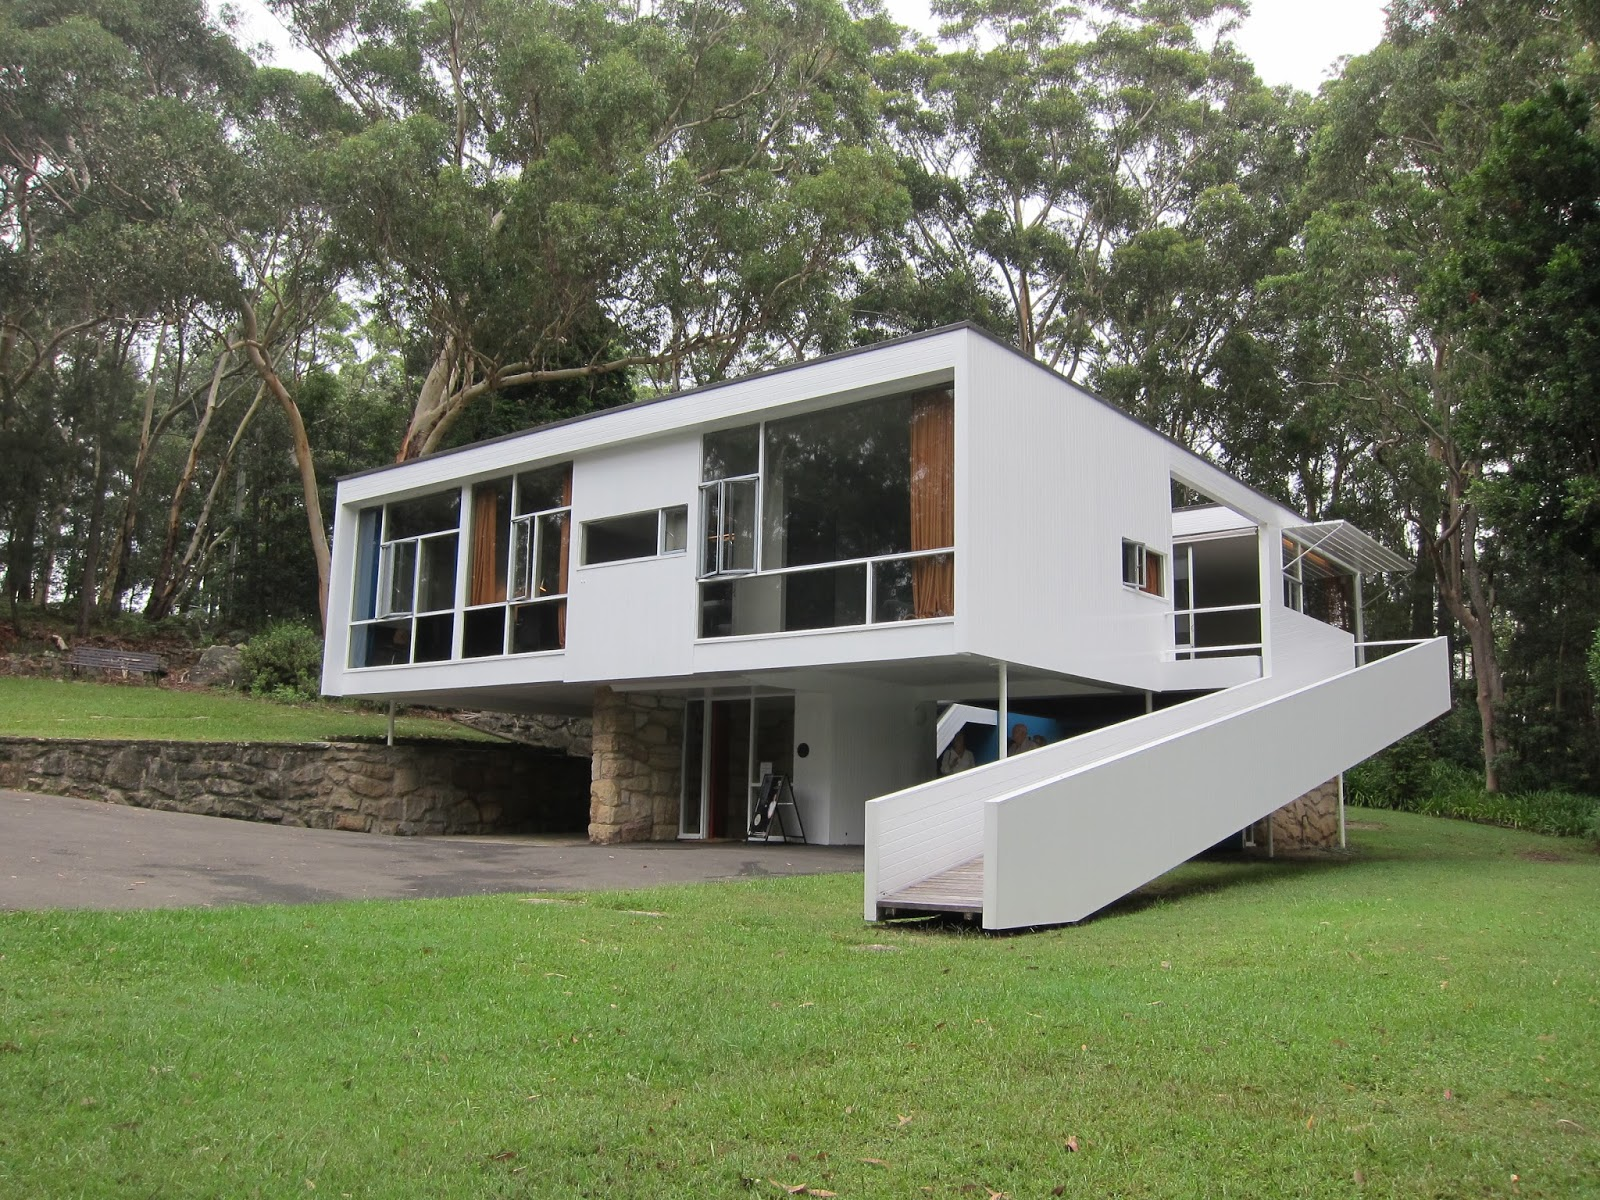 Jenny lin architectural studies rose seidler house for Minimalist house sketchup